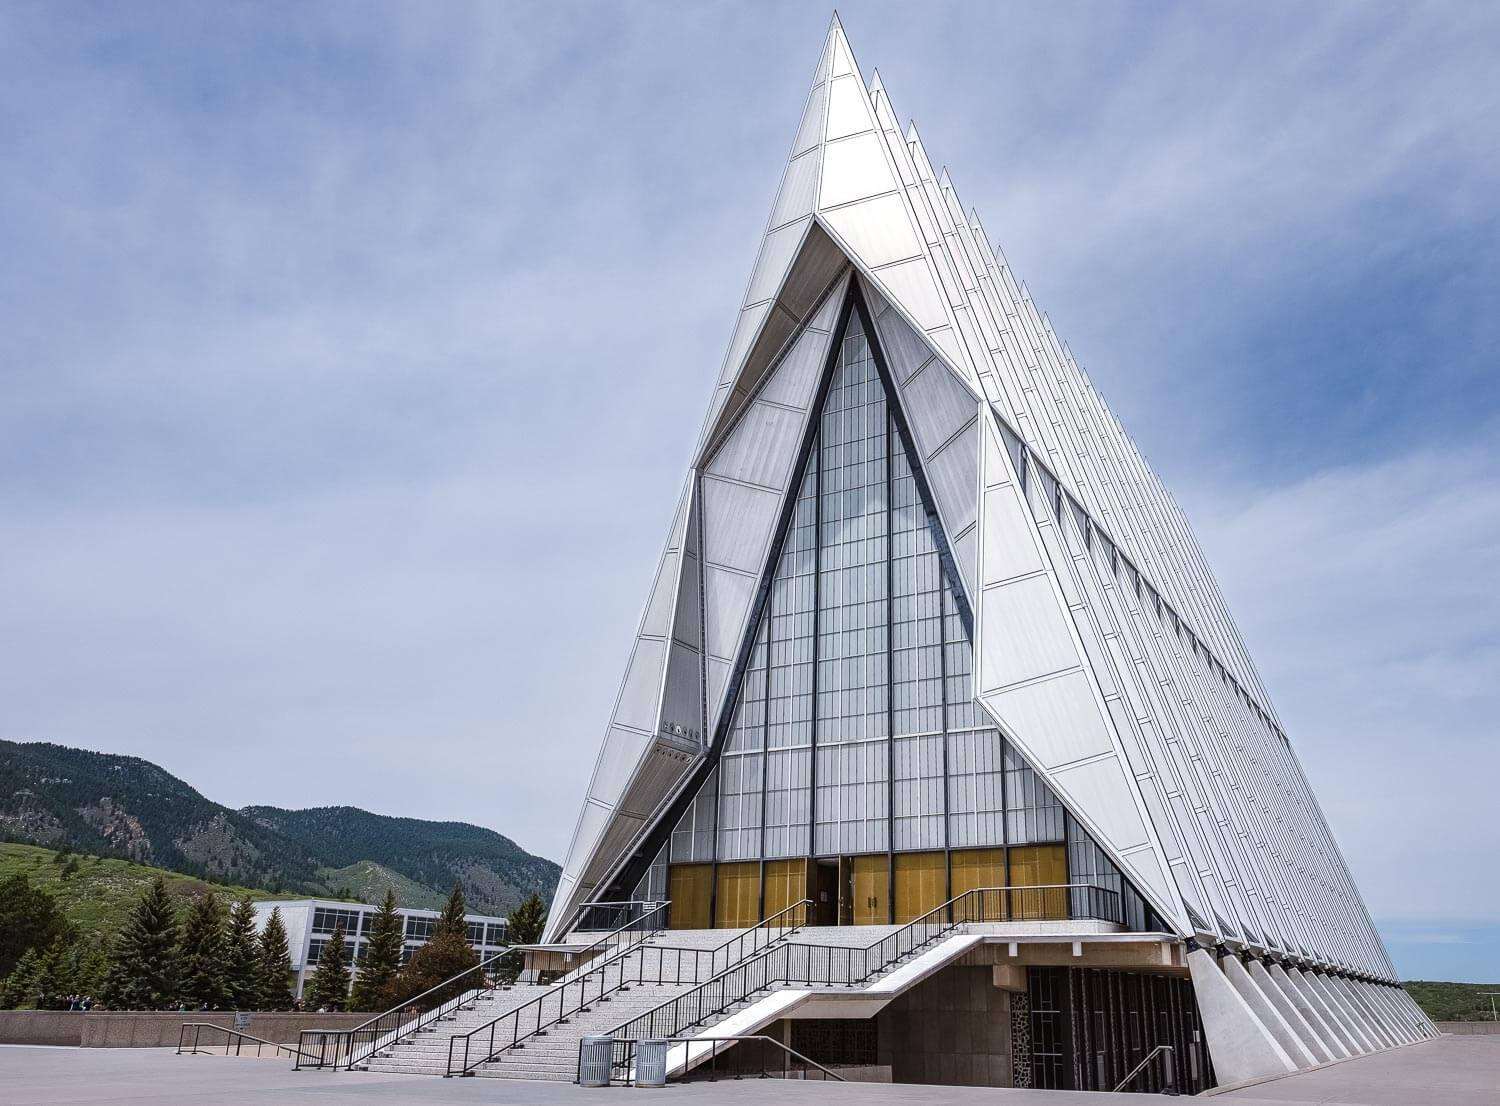 """Chapel at the US Airforce Academy, Colorado Springs.  Travel photography and guide by © Natasha Lequepeys for """"And Then I Met Yoko"""". #usa #architecturephotography #coloradoitinerary #fujifilm"""